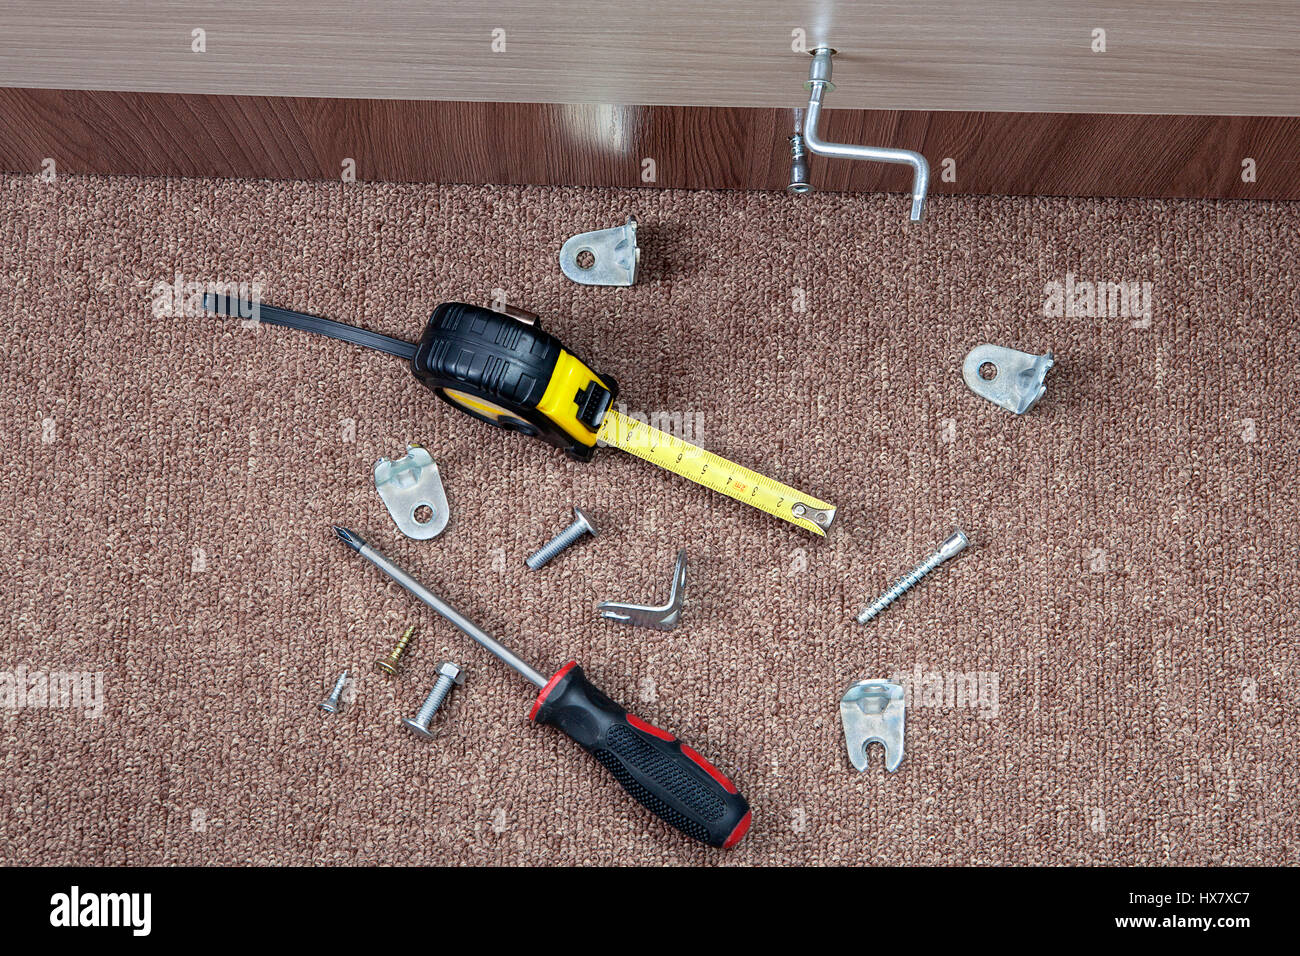 Steel fasteners, brackets and hand tools to install furniture. - Stock Image